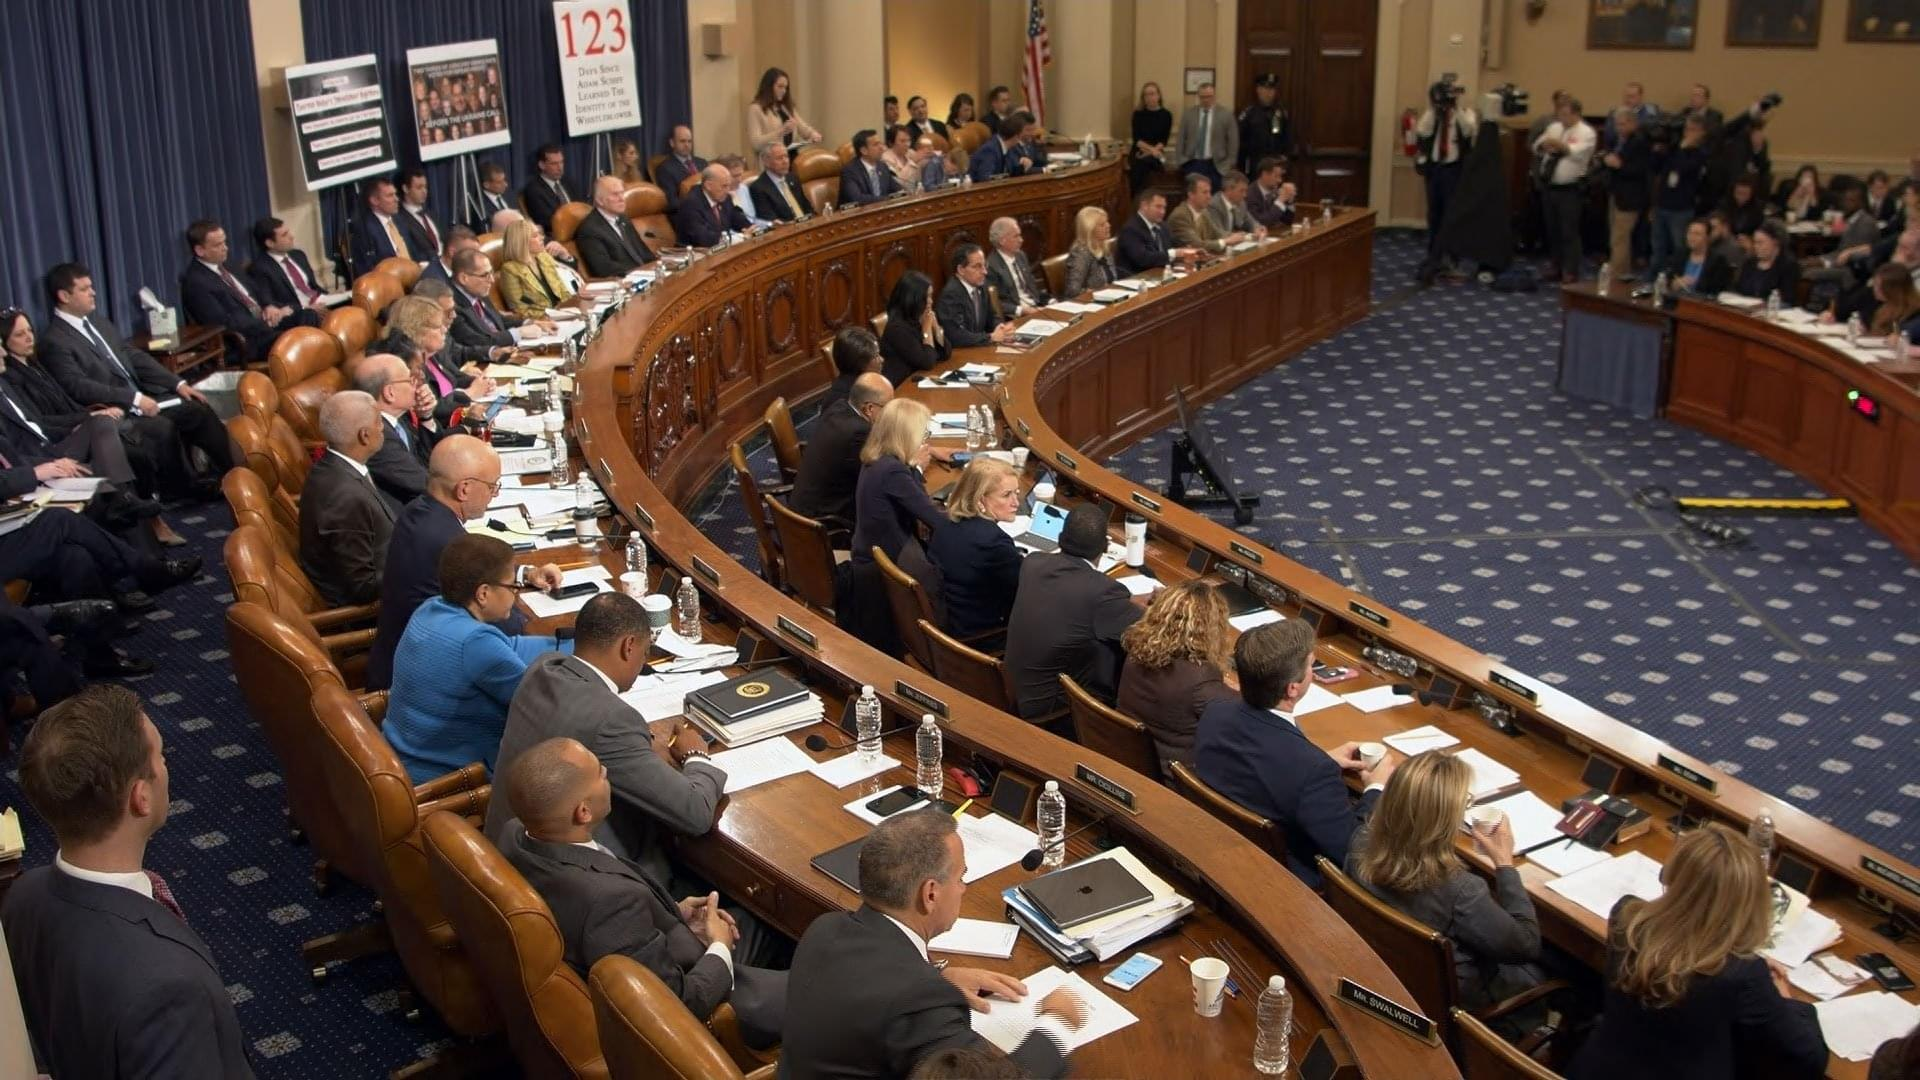 Chris Salcedo Show: House Judiciary Committee Votes to Send Articles to House